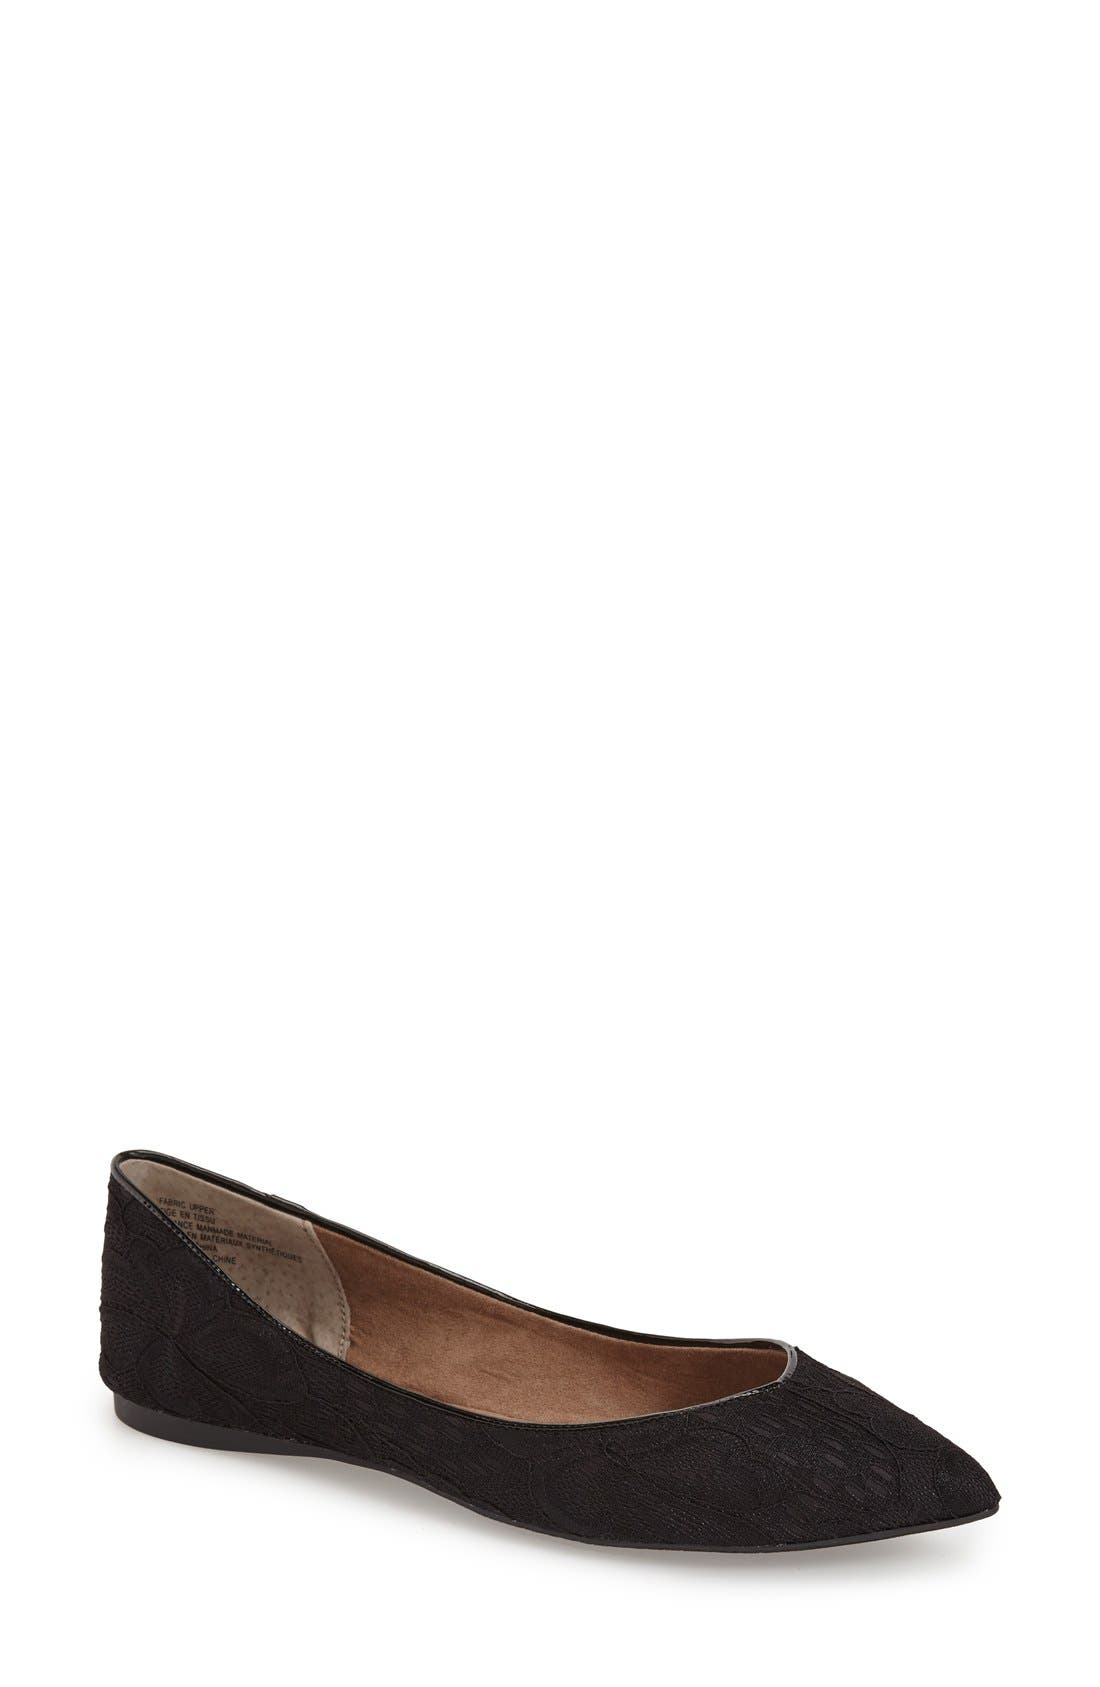 Alternate Image 1 Selected - BP. 'Moveover' Pointy Toe Flat (Women)